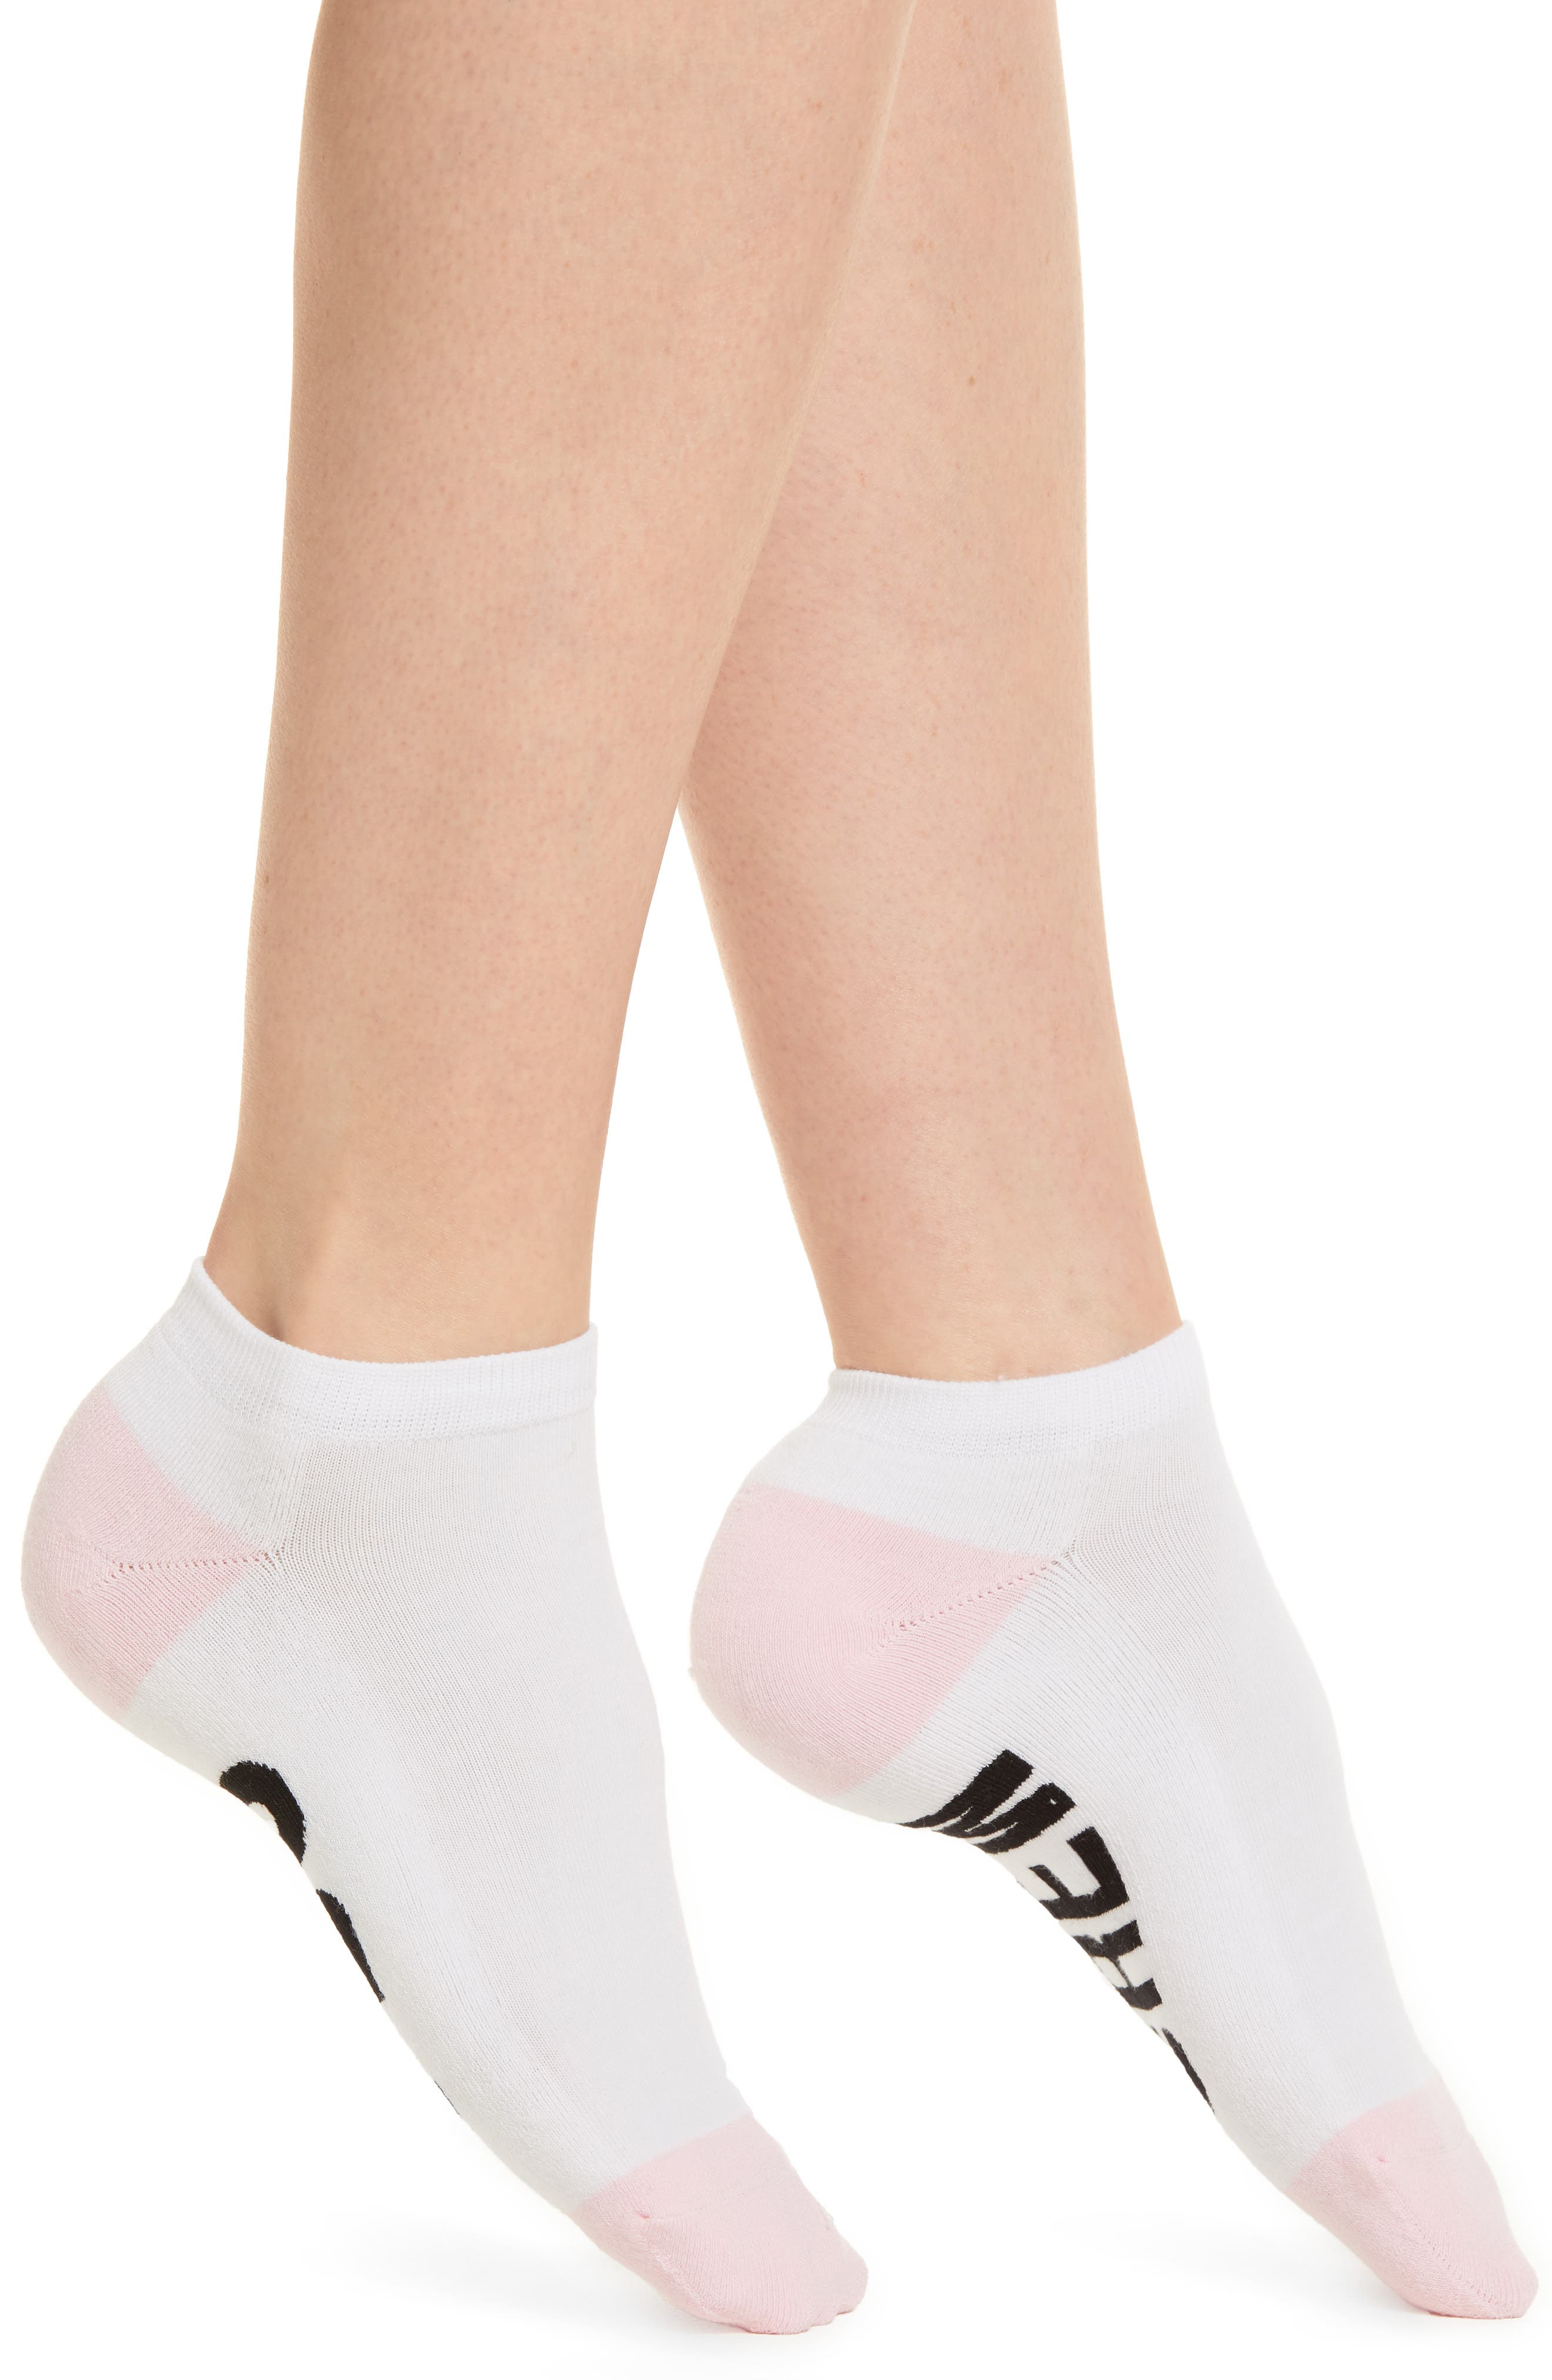 I Do Crew Low-Cut Socks,                         Main,                         color, White